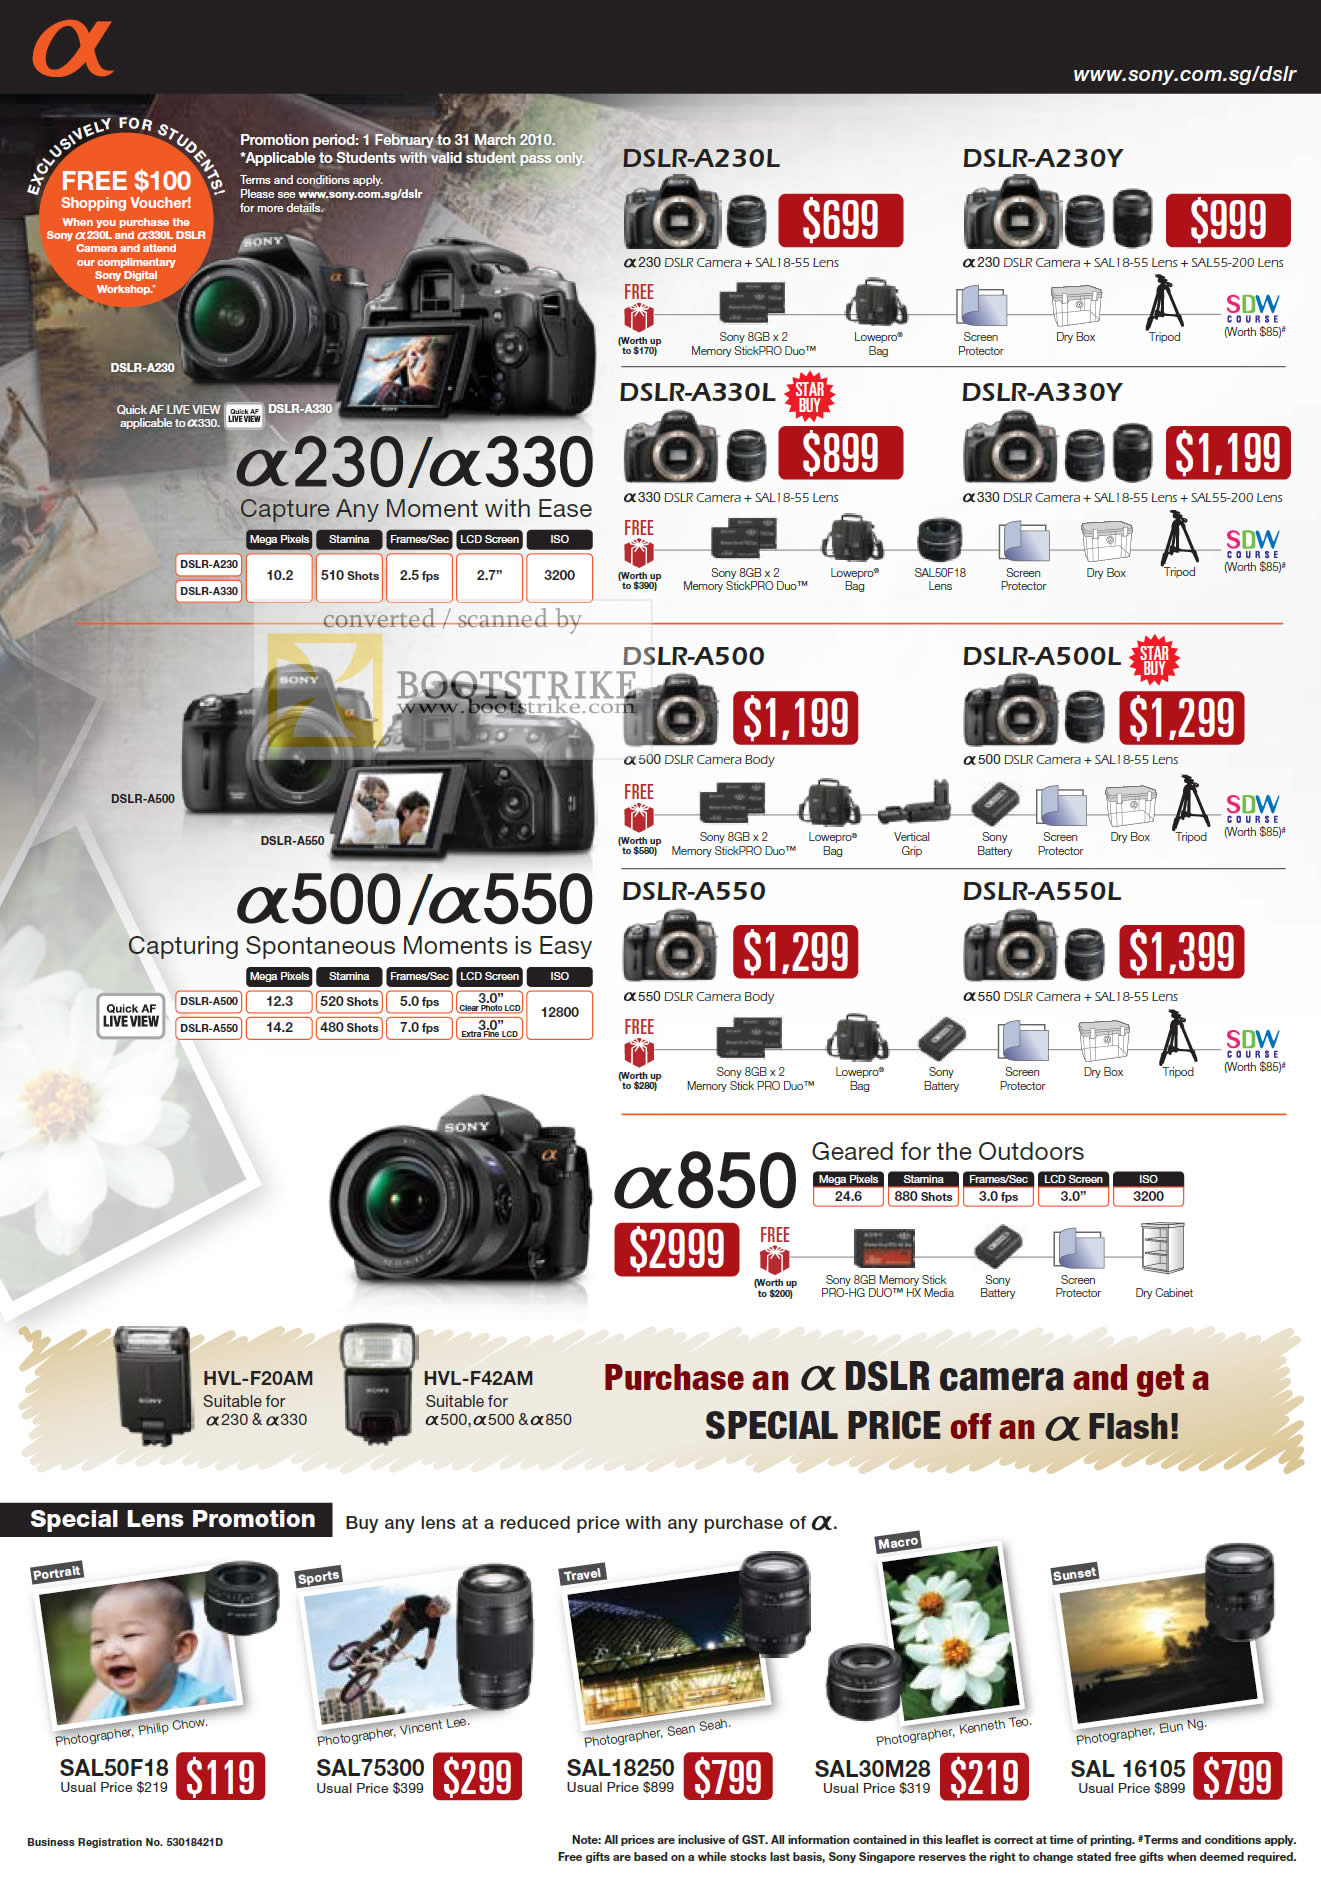 Camera List Of Sony Dslr Camera With Price sony dslr camera prices